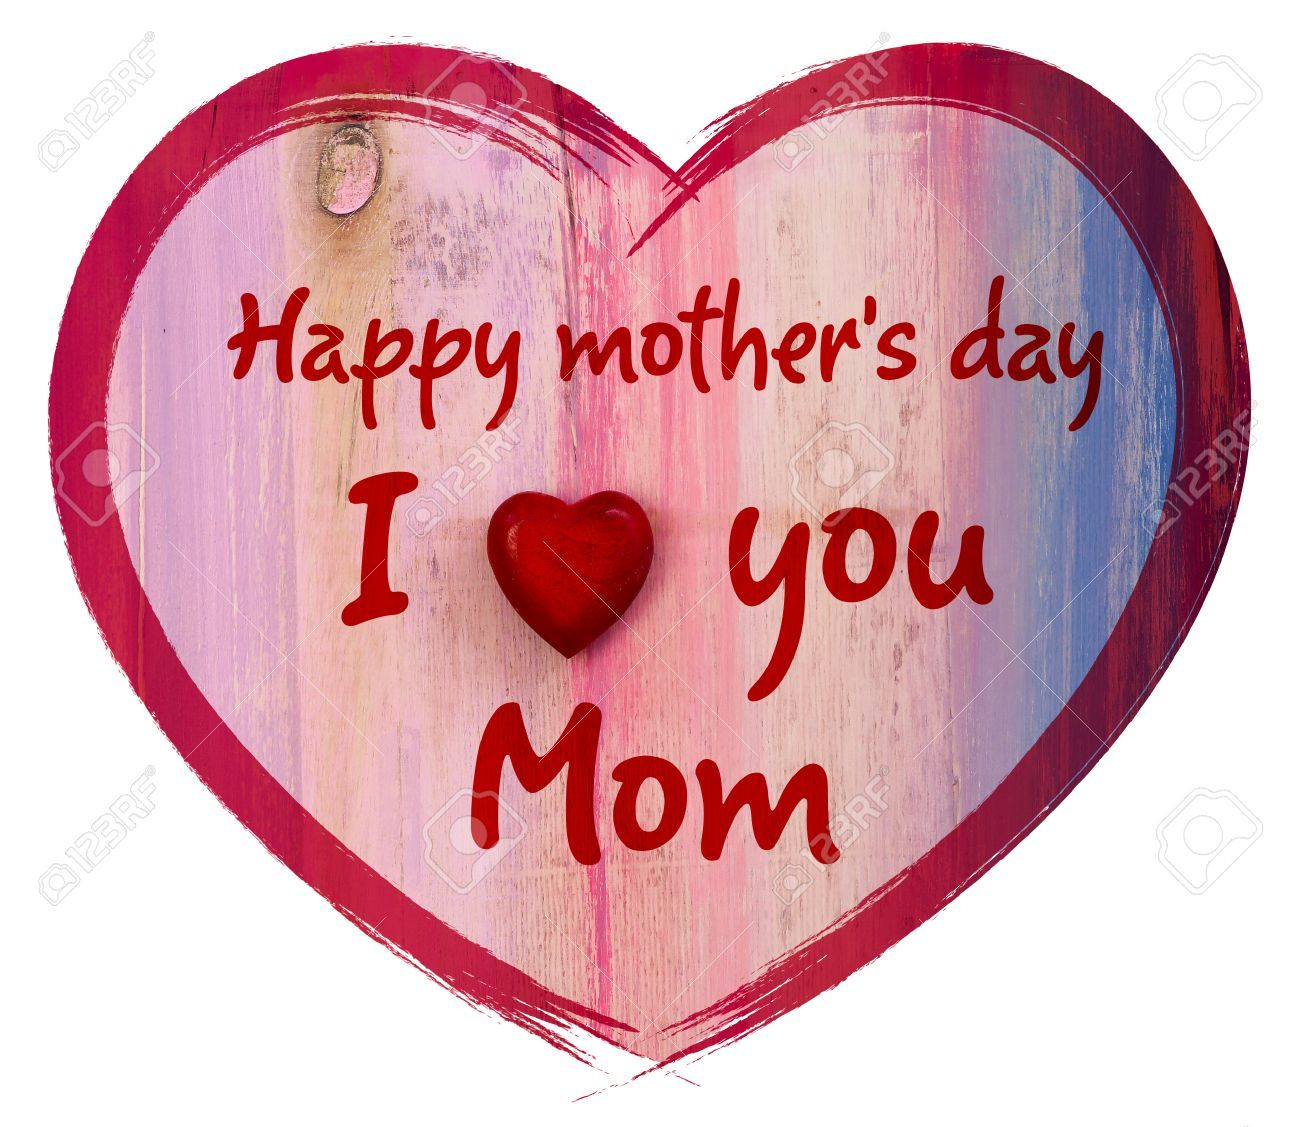 Mothers Day Heart Images Love You Mom I Love You Mom Happy Mothers Day Poem